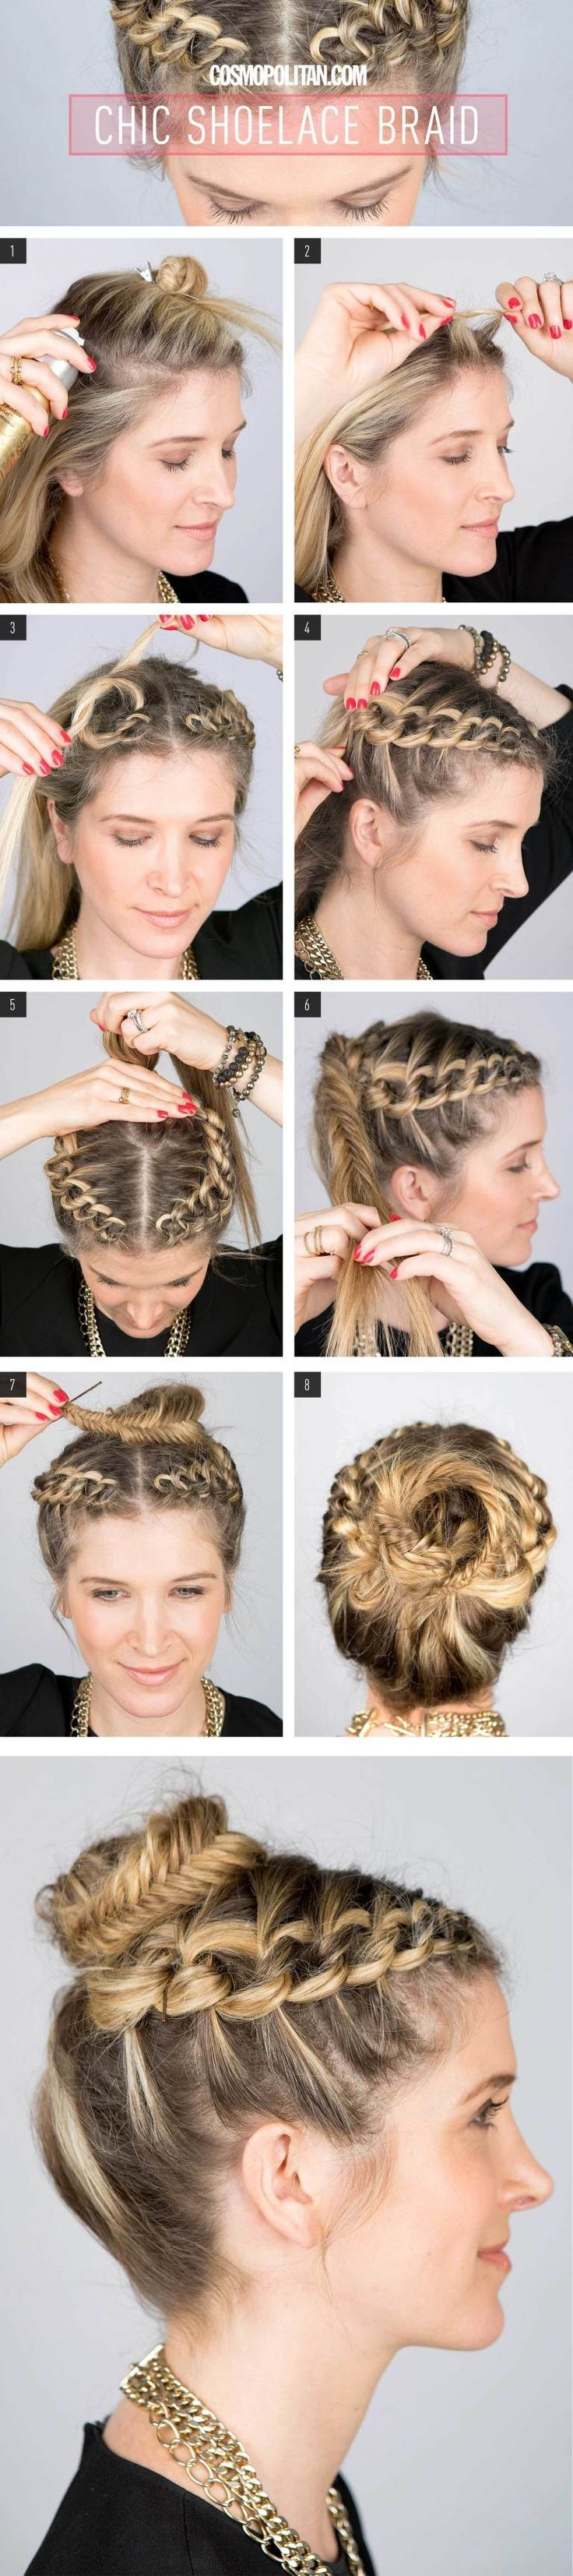 #braid #tutorial #howto #DIY #hairstyle #hairdo: